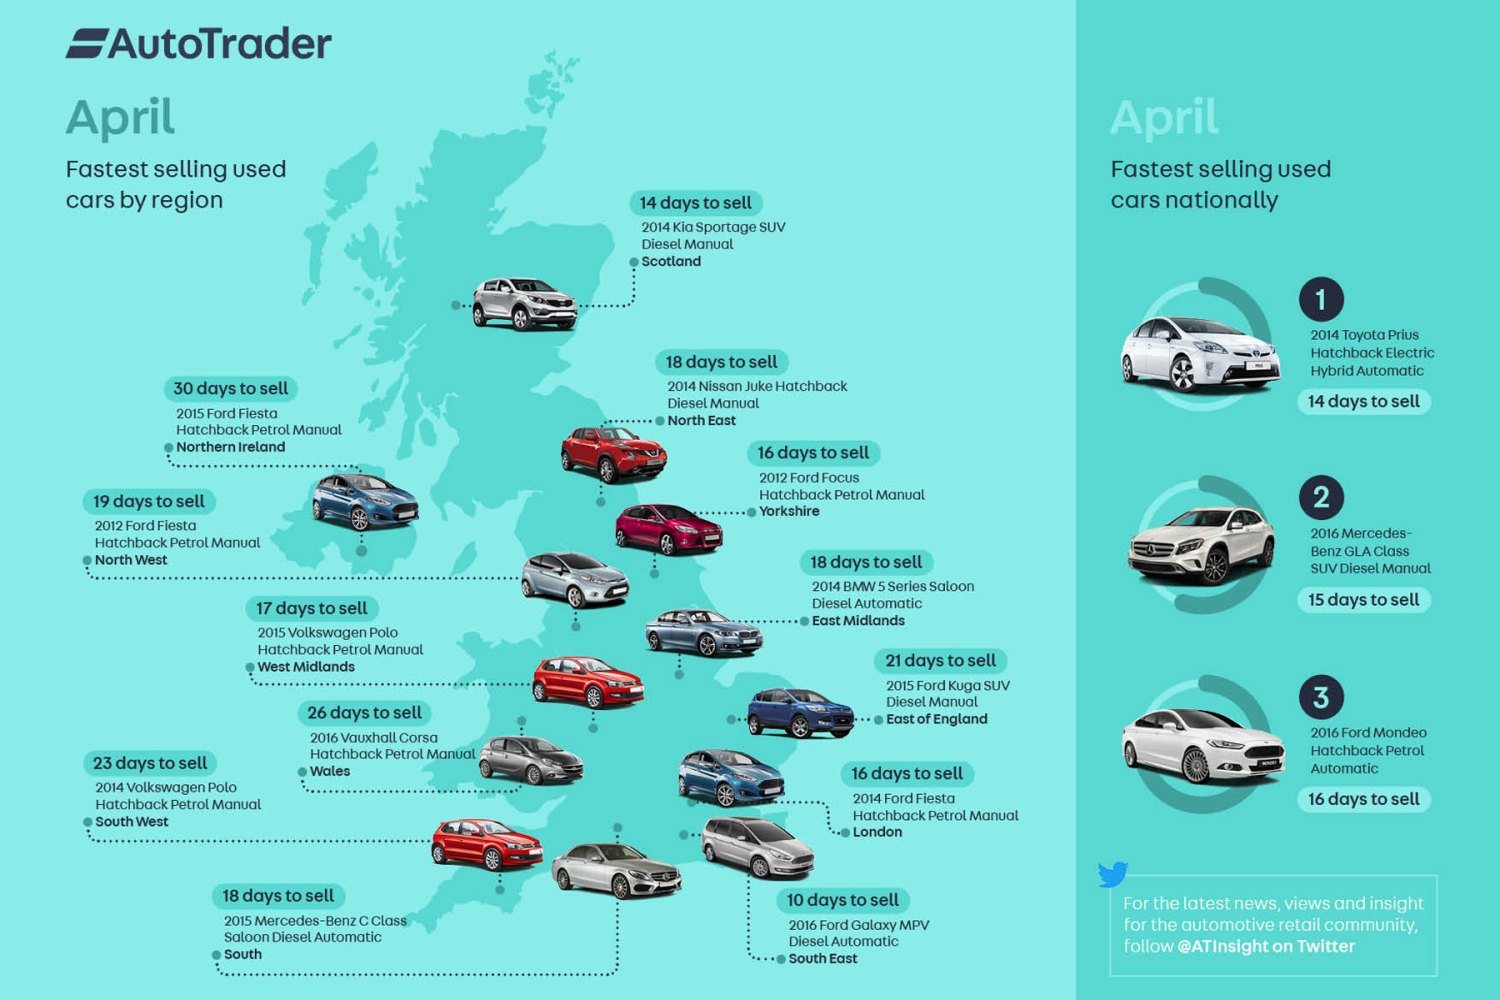 The Toyota Prius is Britain's fastest-selling used car